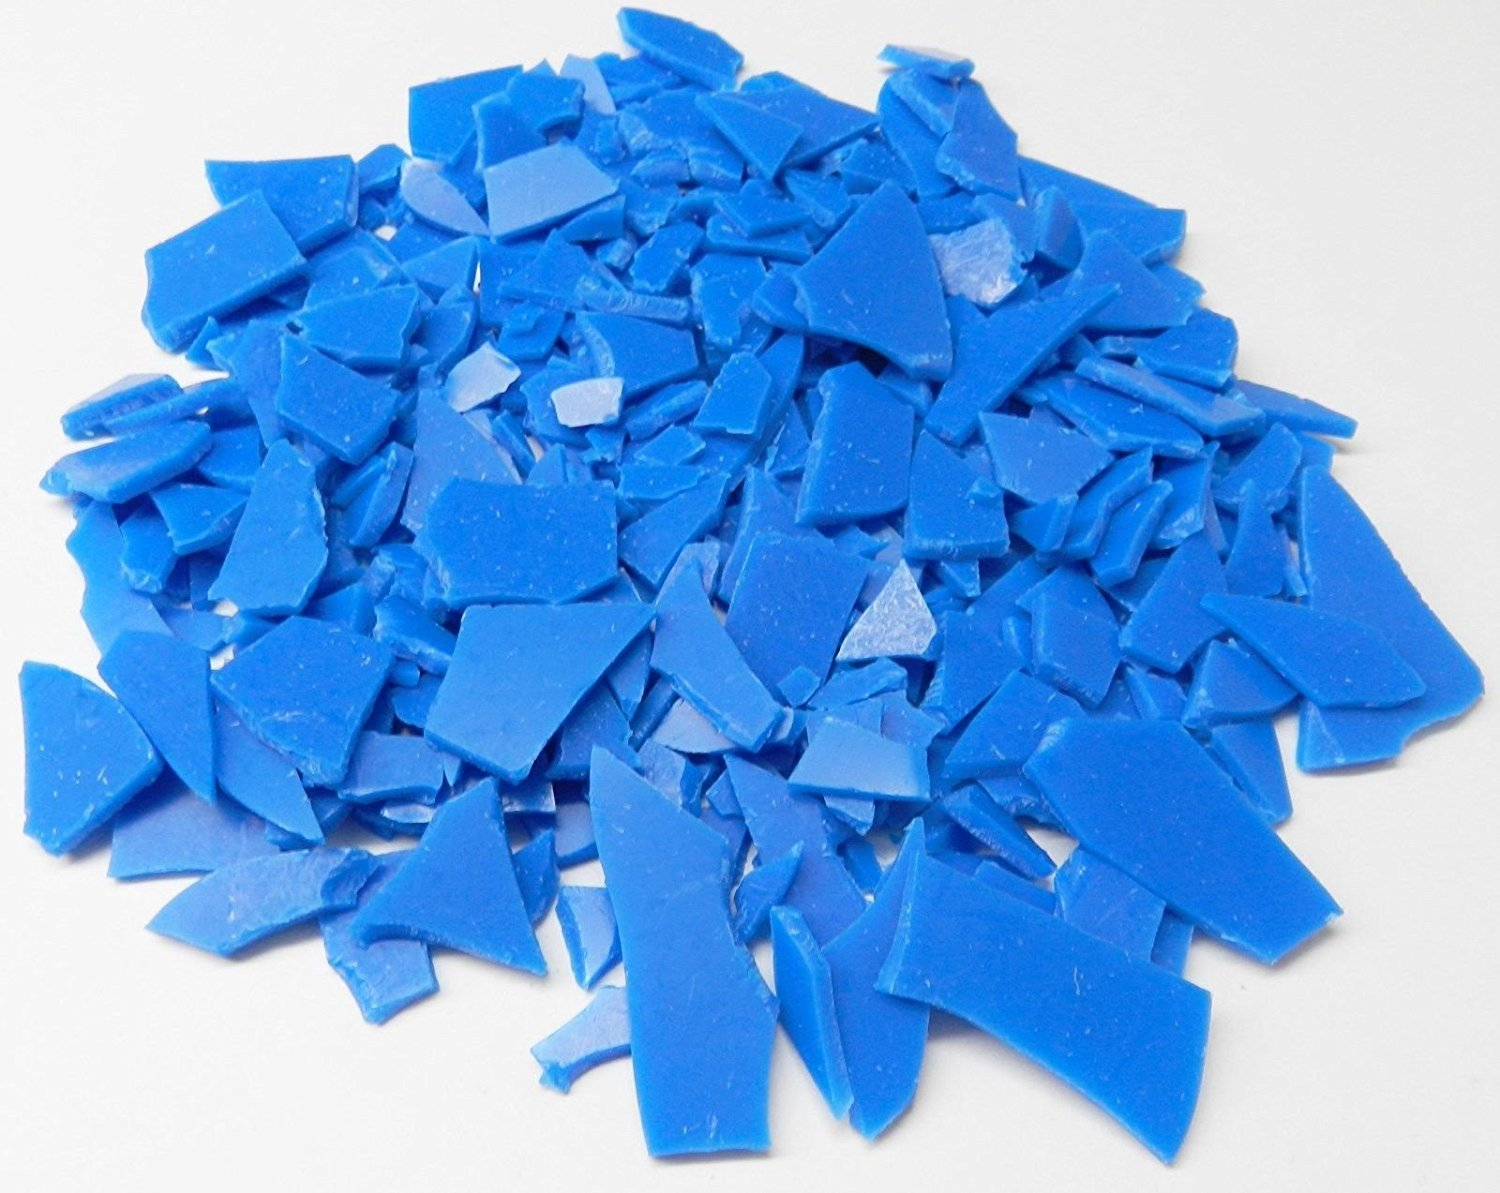 Freeman Injection Wax Flexible Blue Flakes Wax Jewelry Lost Wax Casting 1 Lb Bag Lz 1 2 Fre Flexible Blue Flakes Freeman Flake Wax Lost Wax By Noveltools Walmart Com Walmart Com